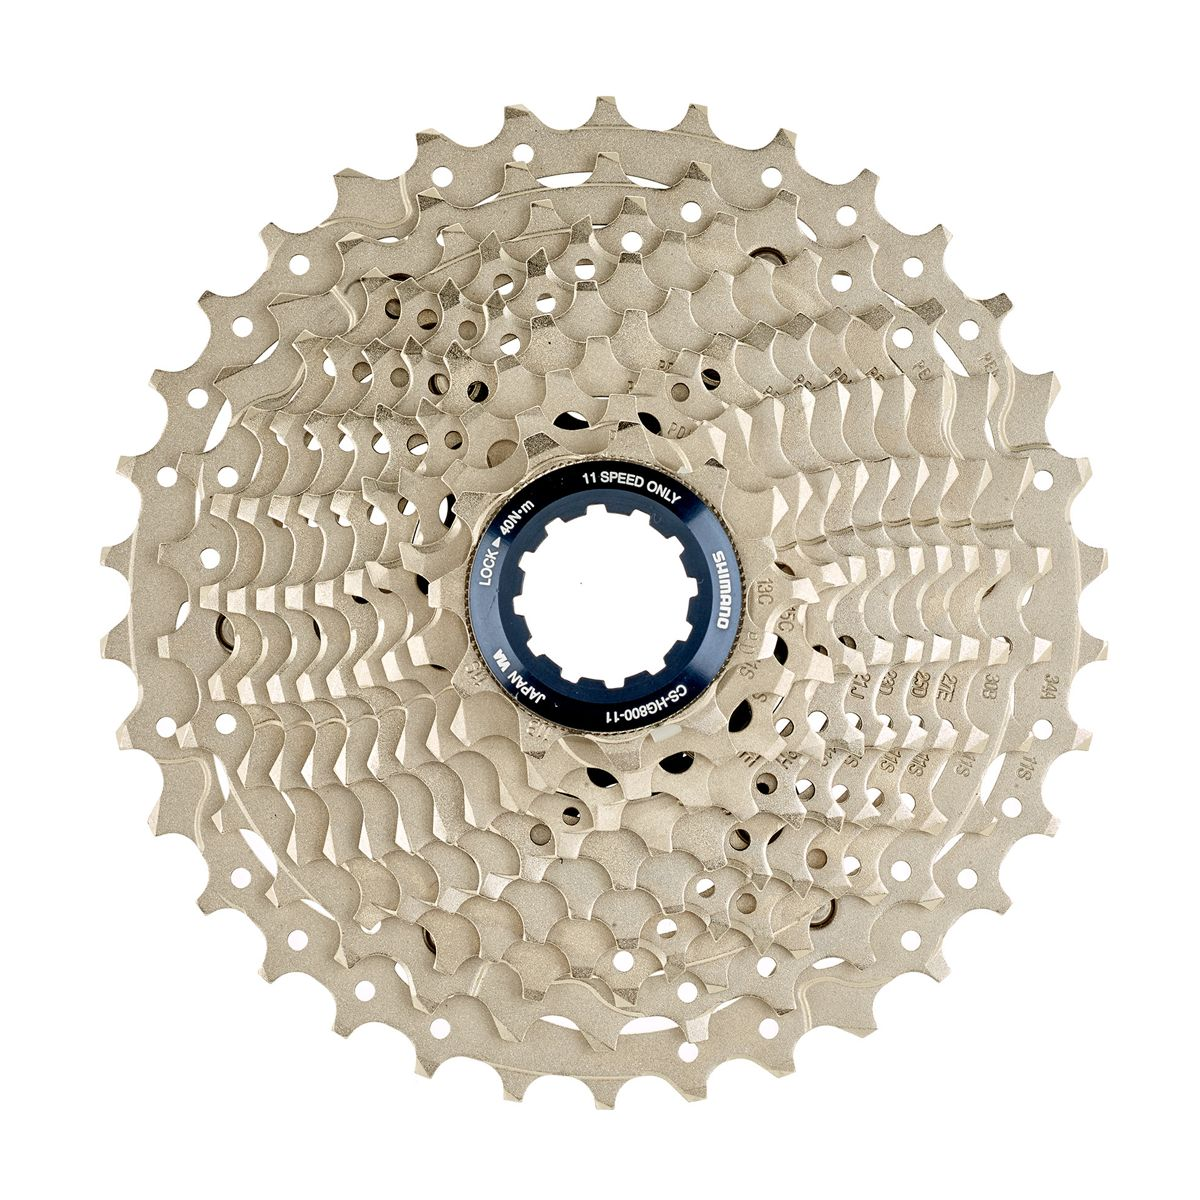 CS-HG800 11-speed cassette